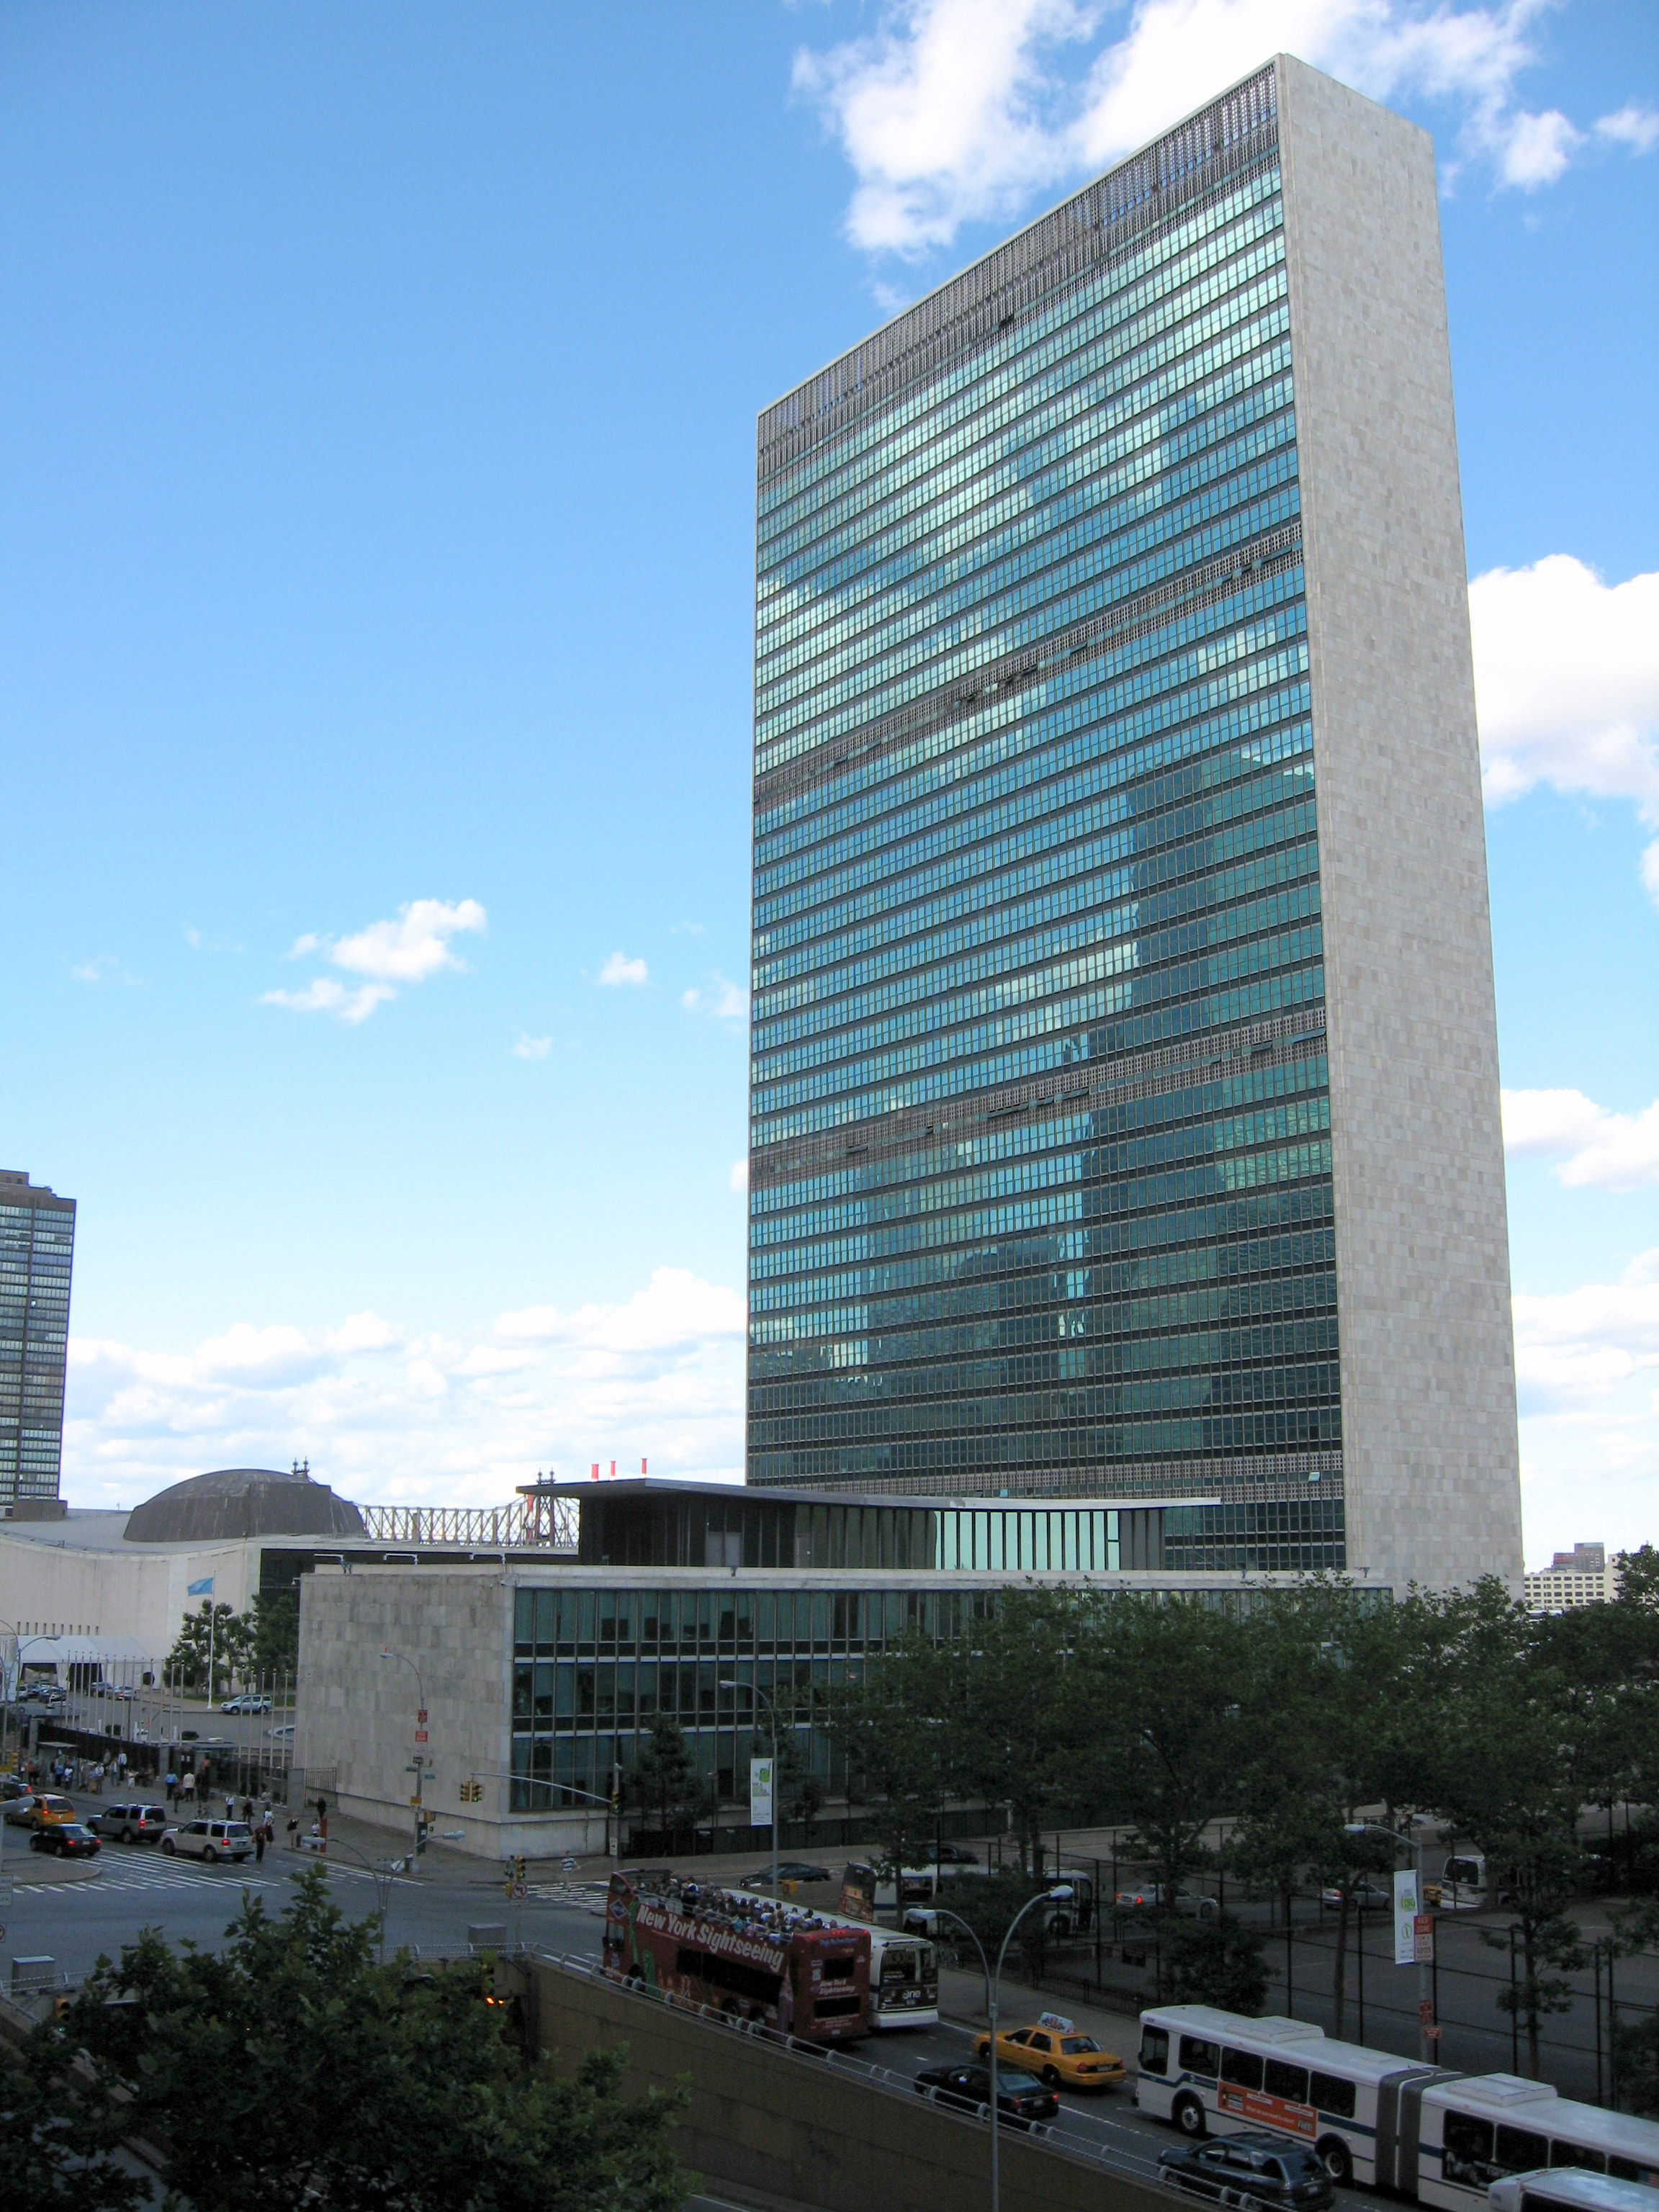 https://upload.wikimedia.org/wikipedia/commons/9/91/UN_Headquarters_2.jpg